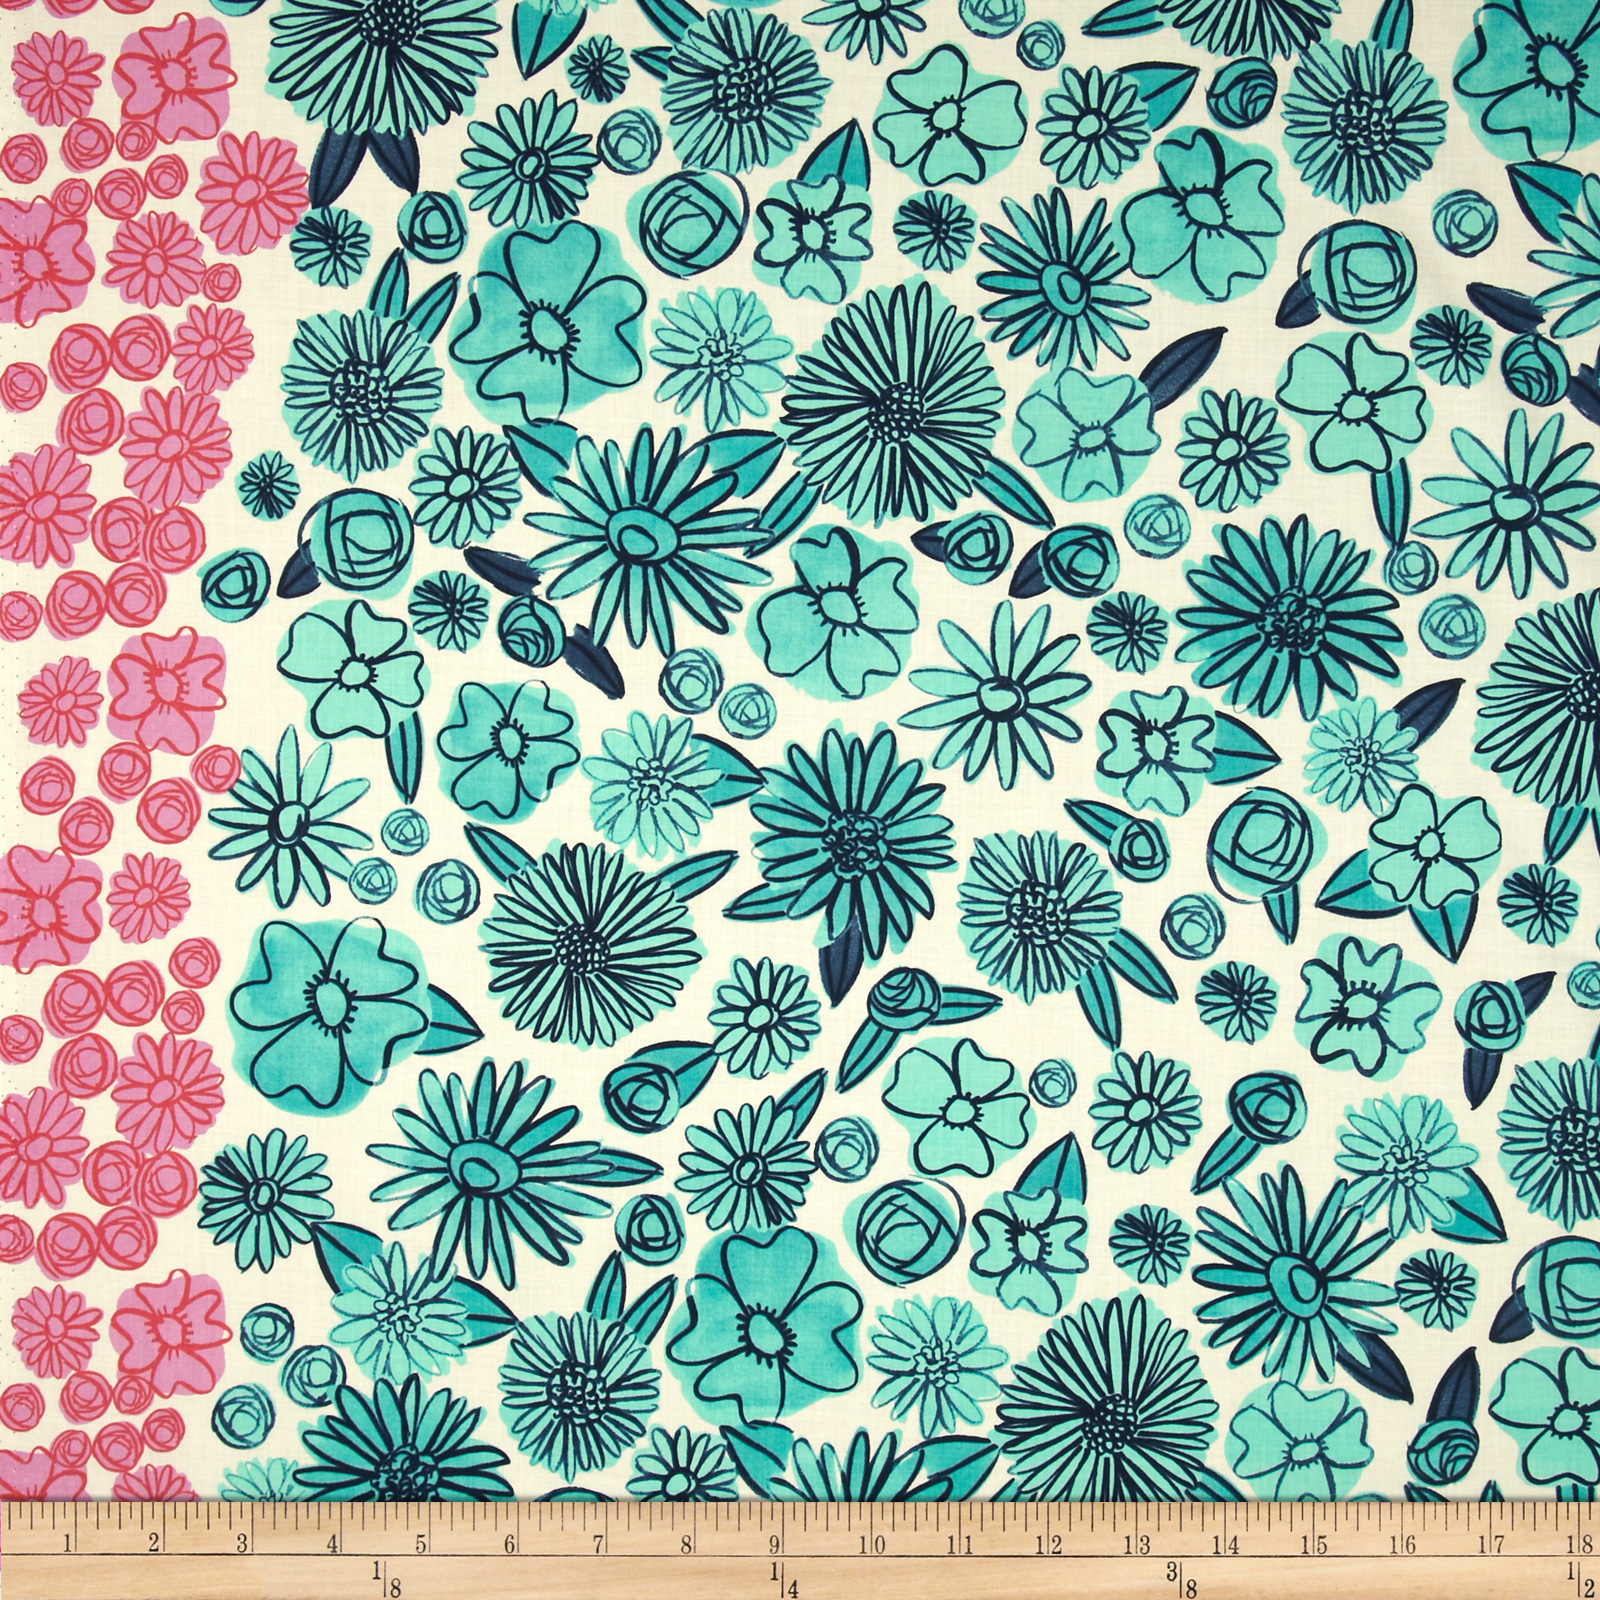 Cotton + Steel Lawn Hatbox Palm Springs Floral Teal Fabric by Cotton & Steel in USA